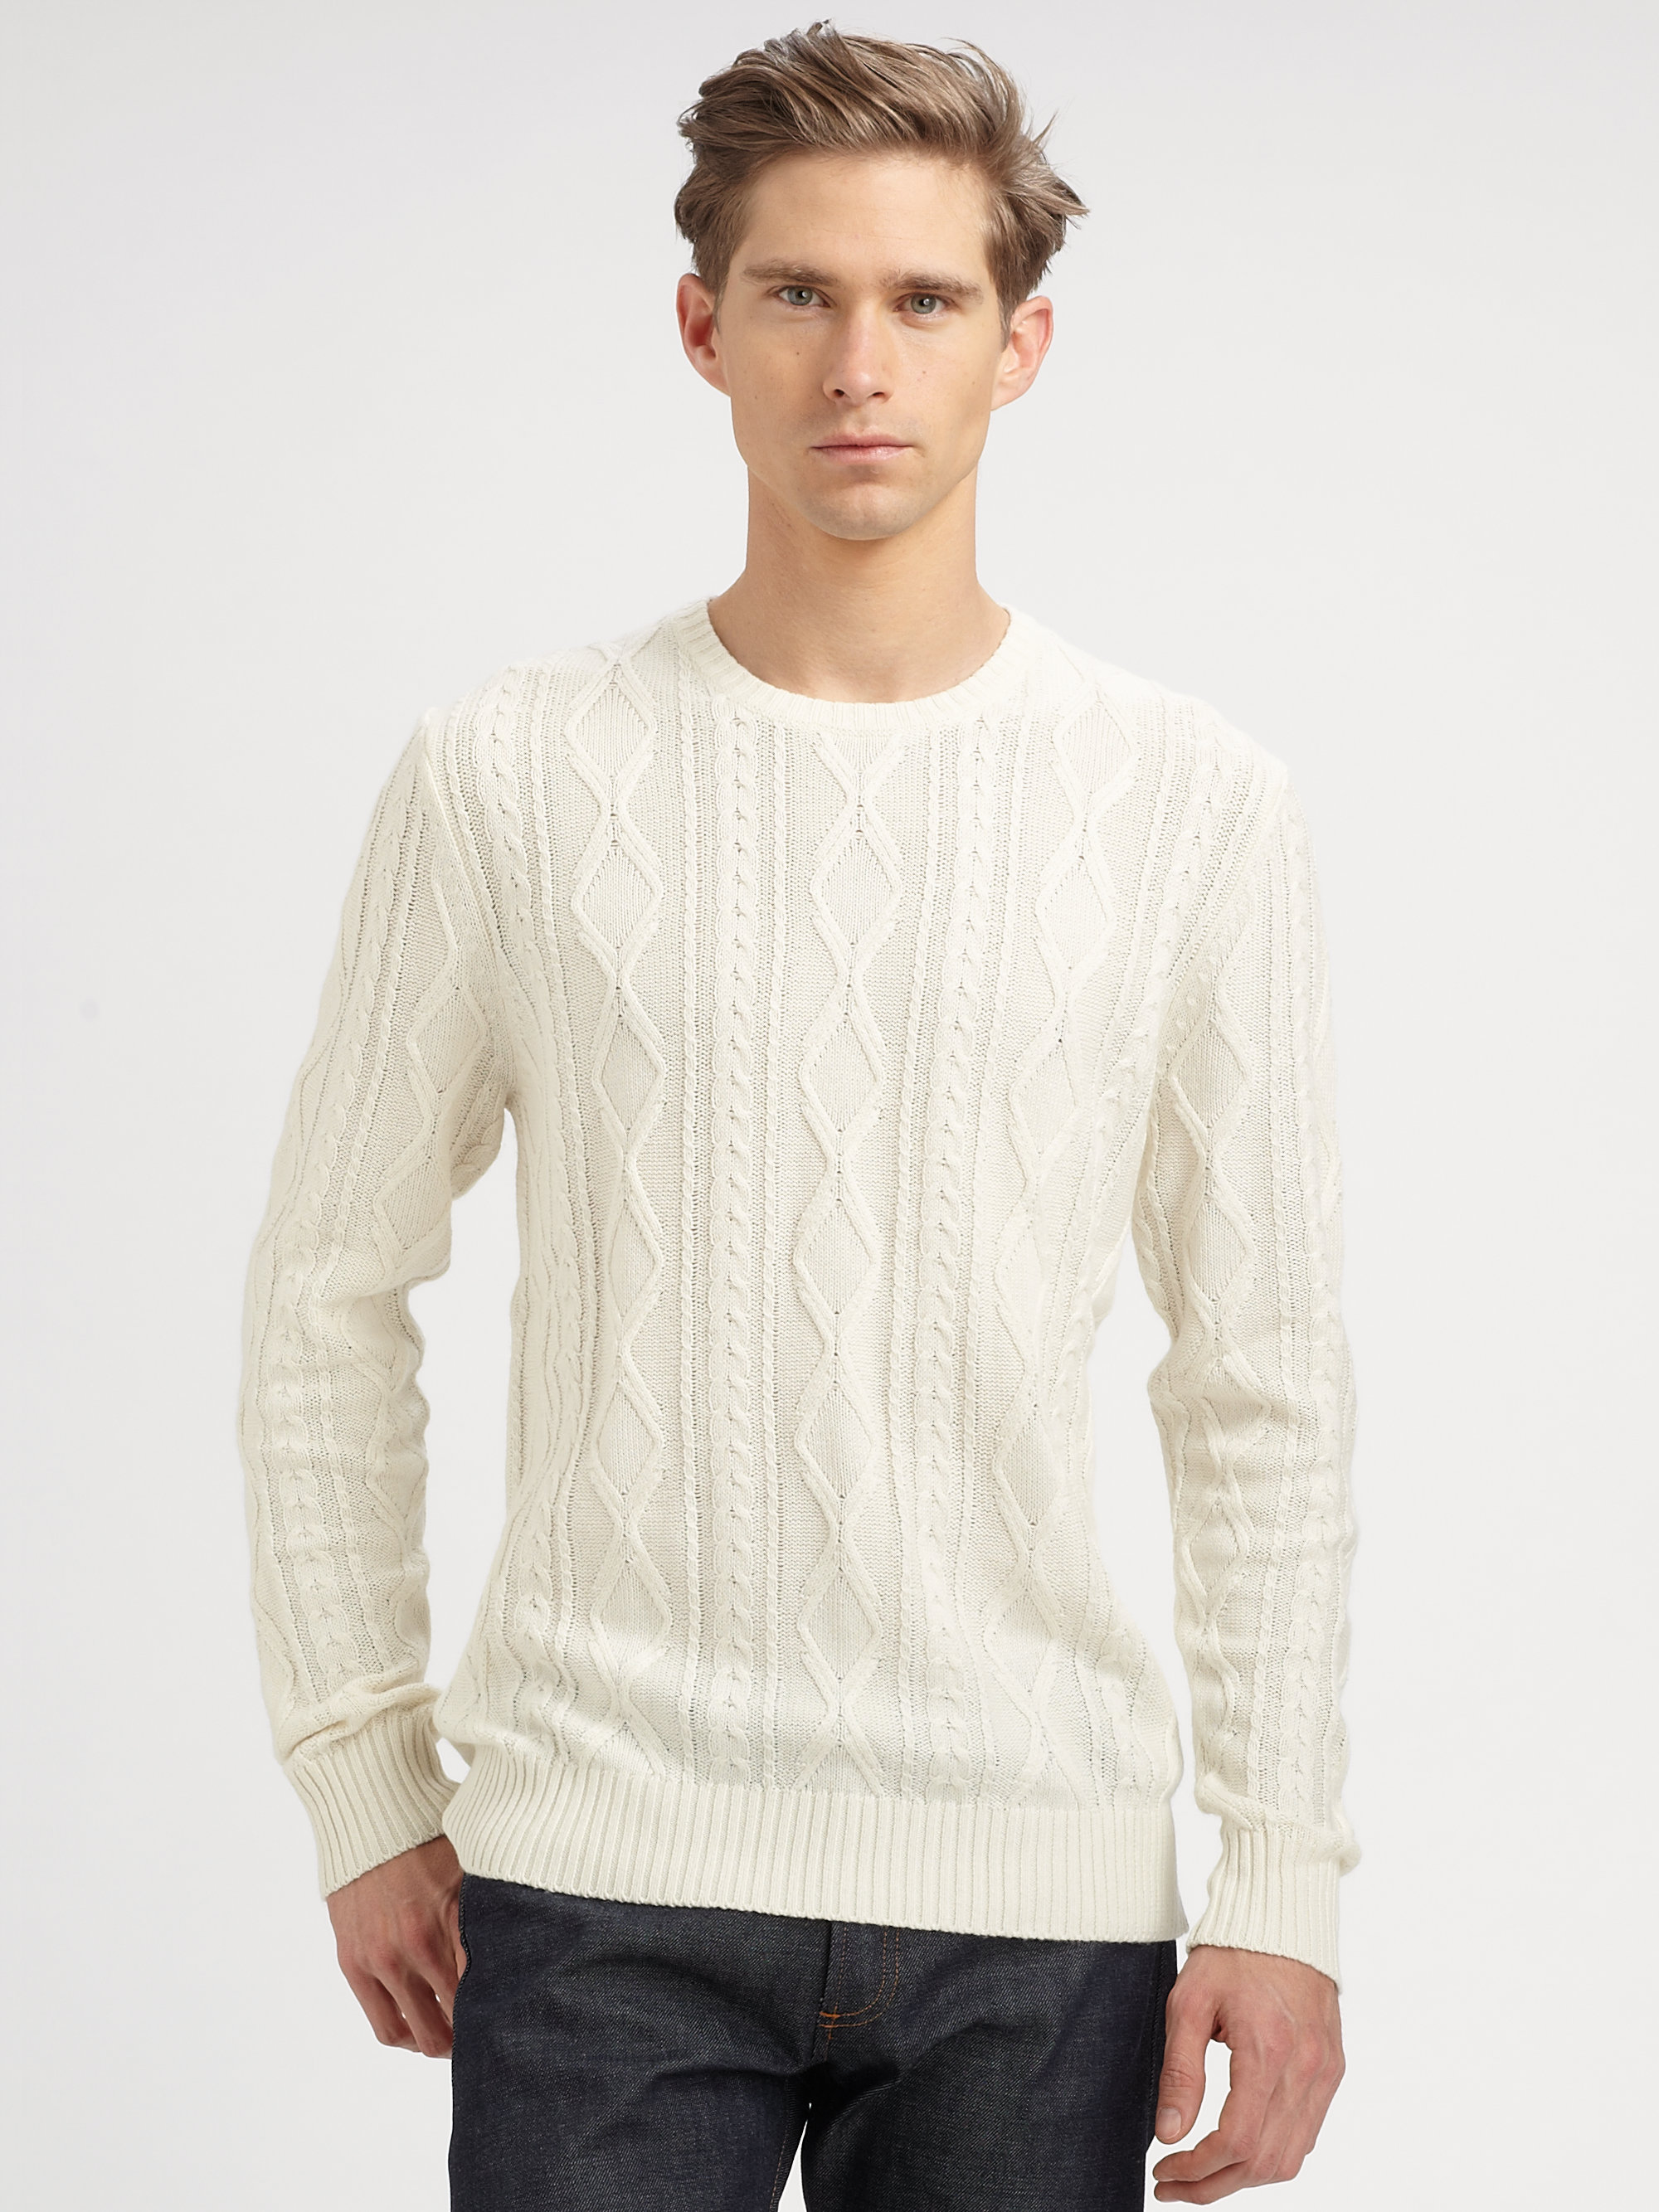 Lyst Saks Fifth Avenue Cashmere Silk Cableknit Sweater In White